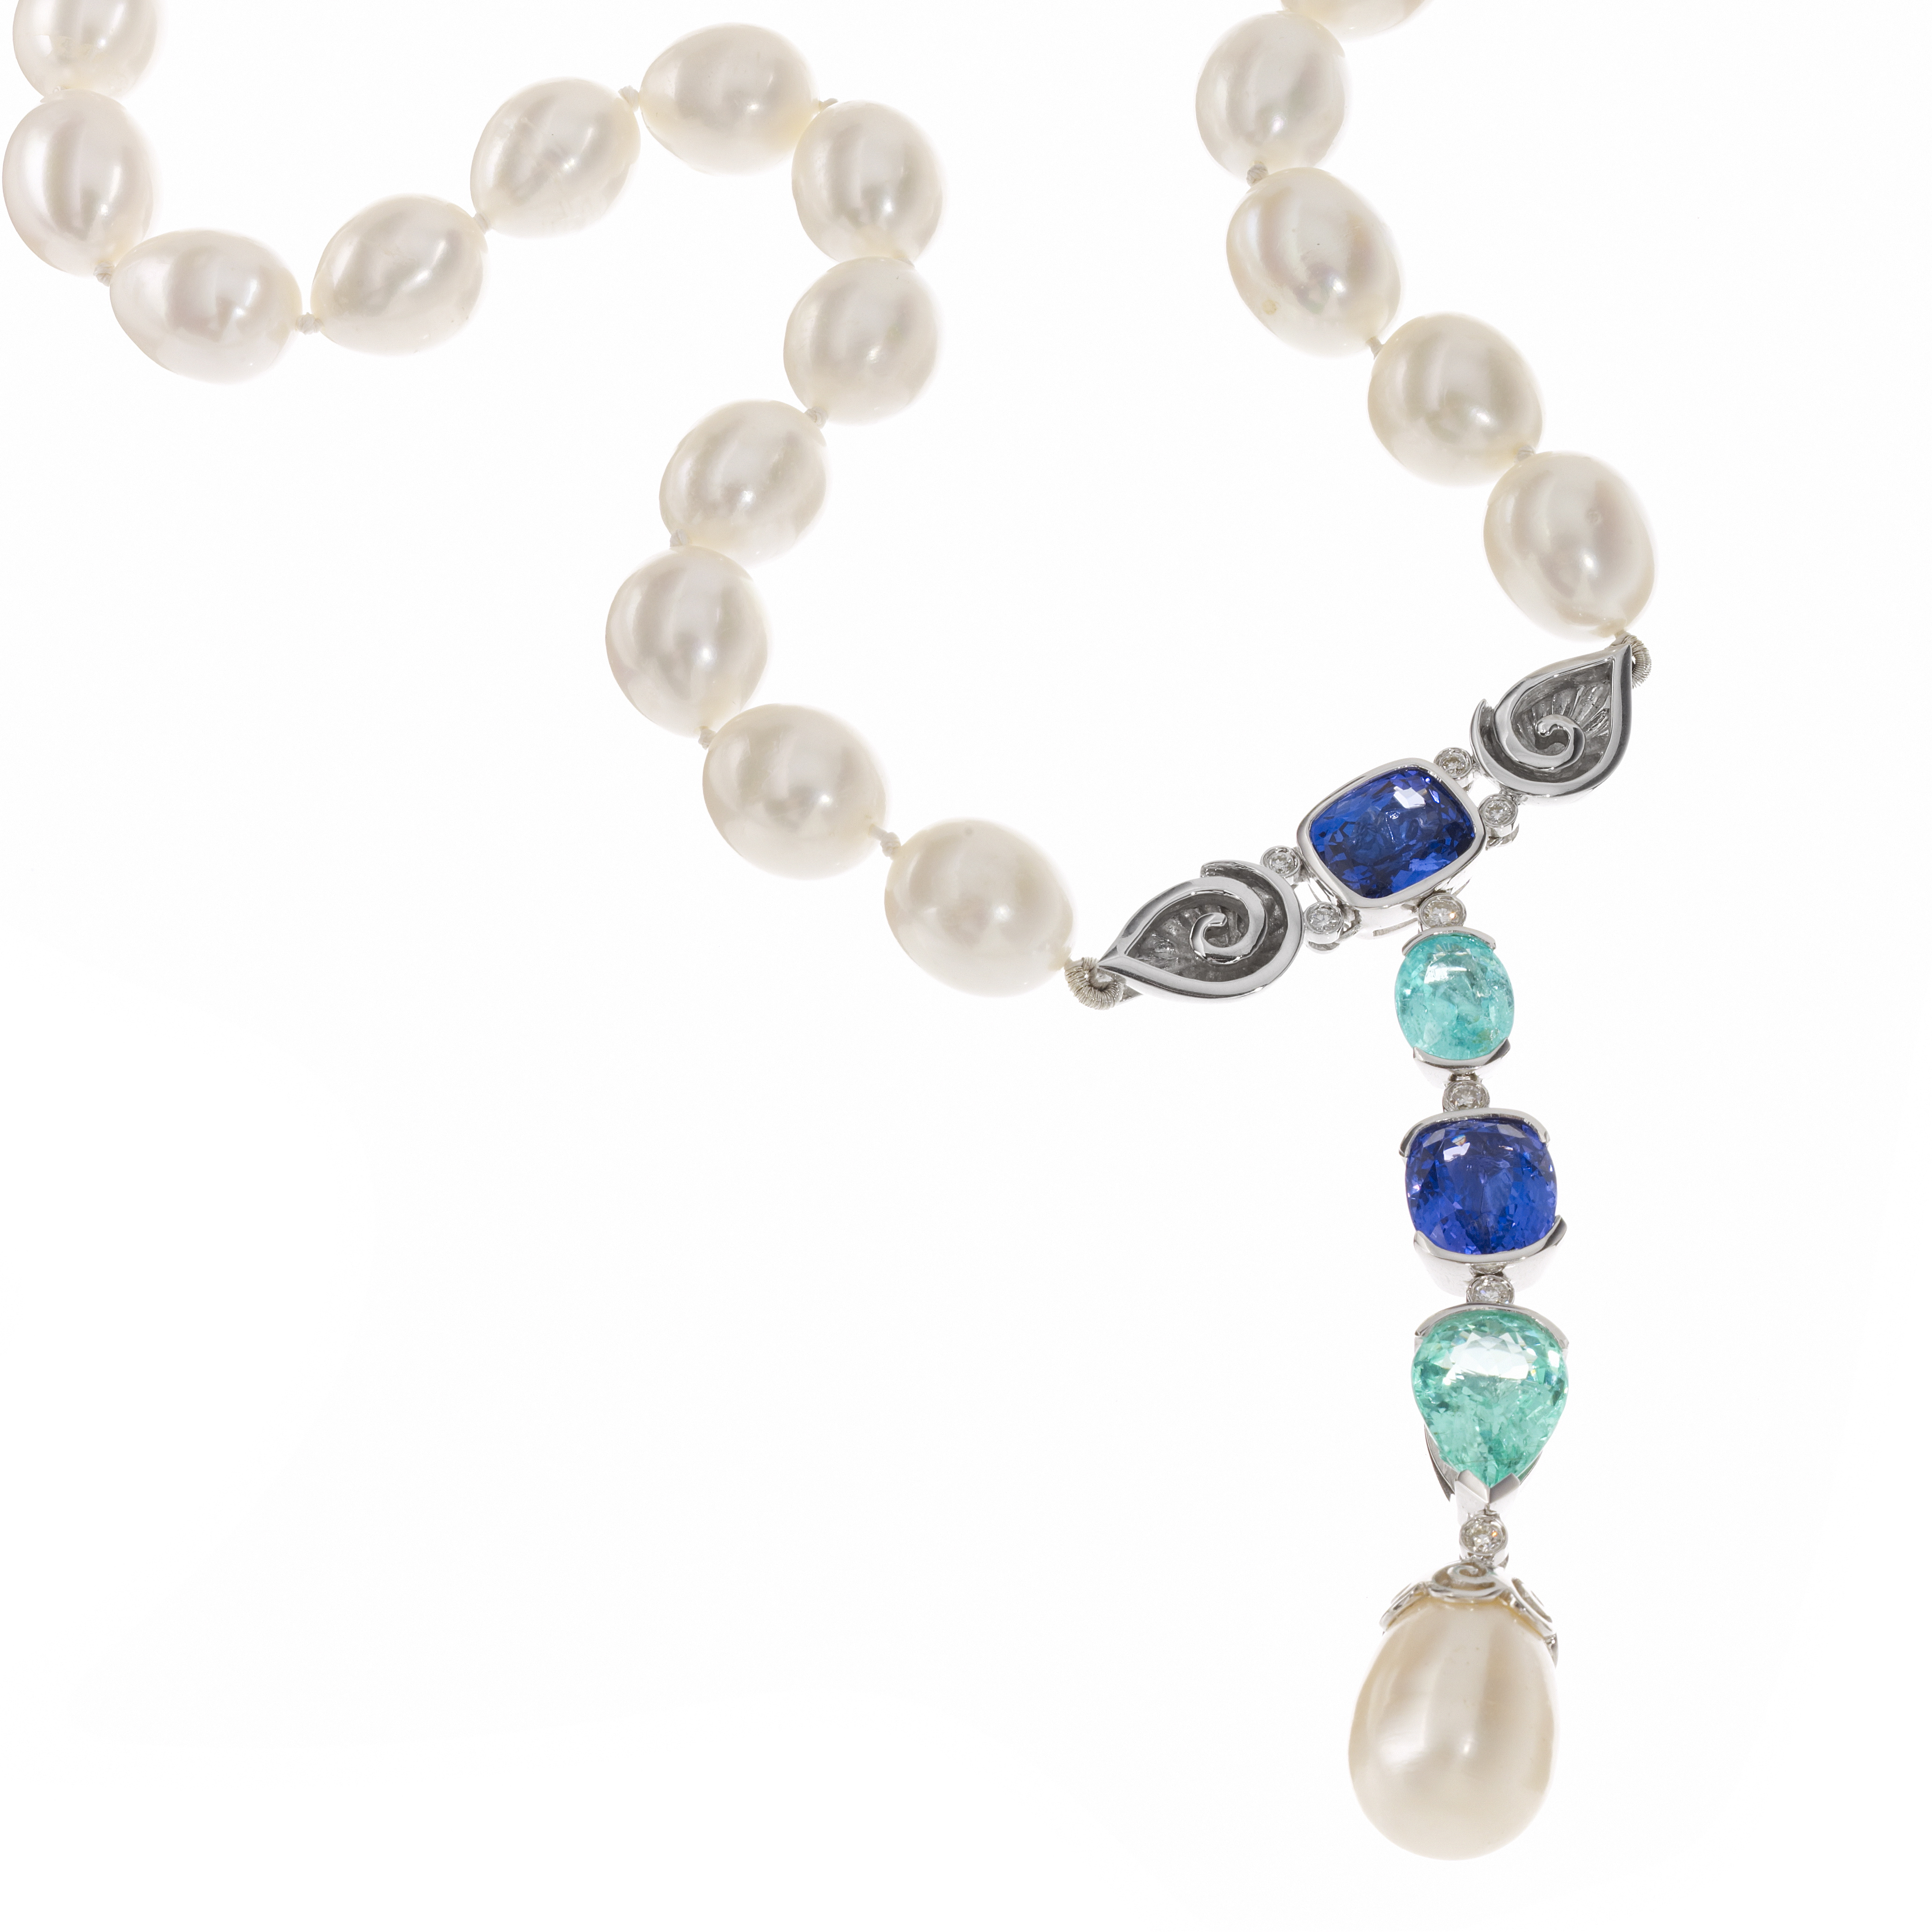 Necklace, Tanzanite, Paraiba Tourmaline, Diamond, Pear motif, Pearl necklace.